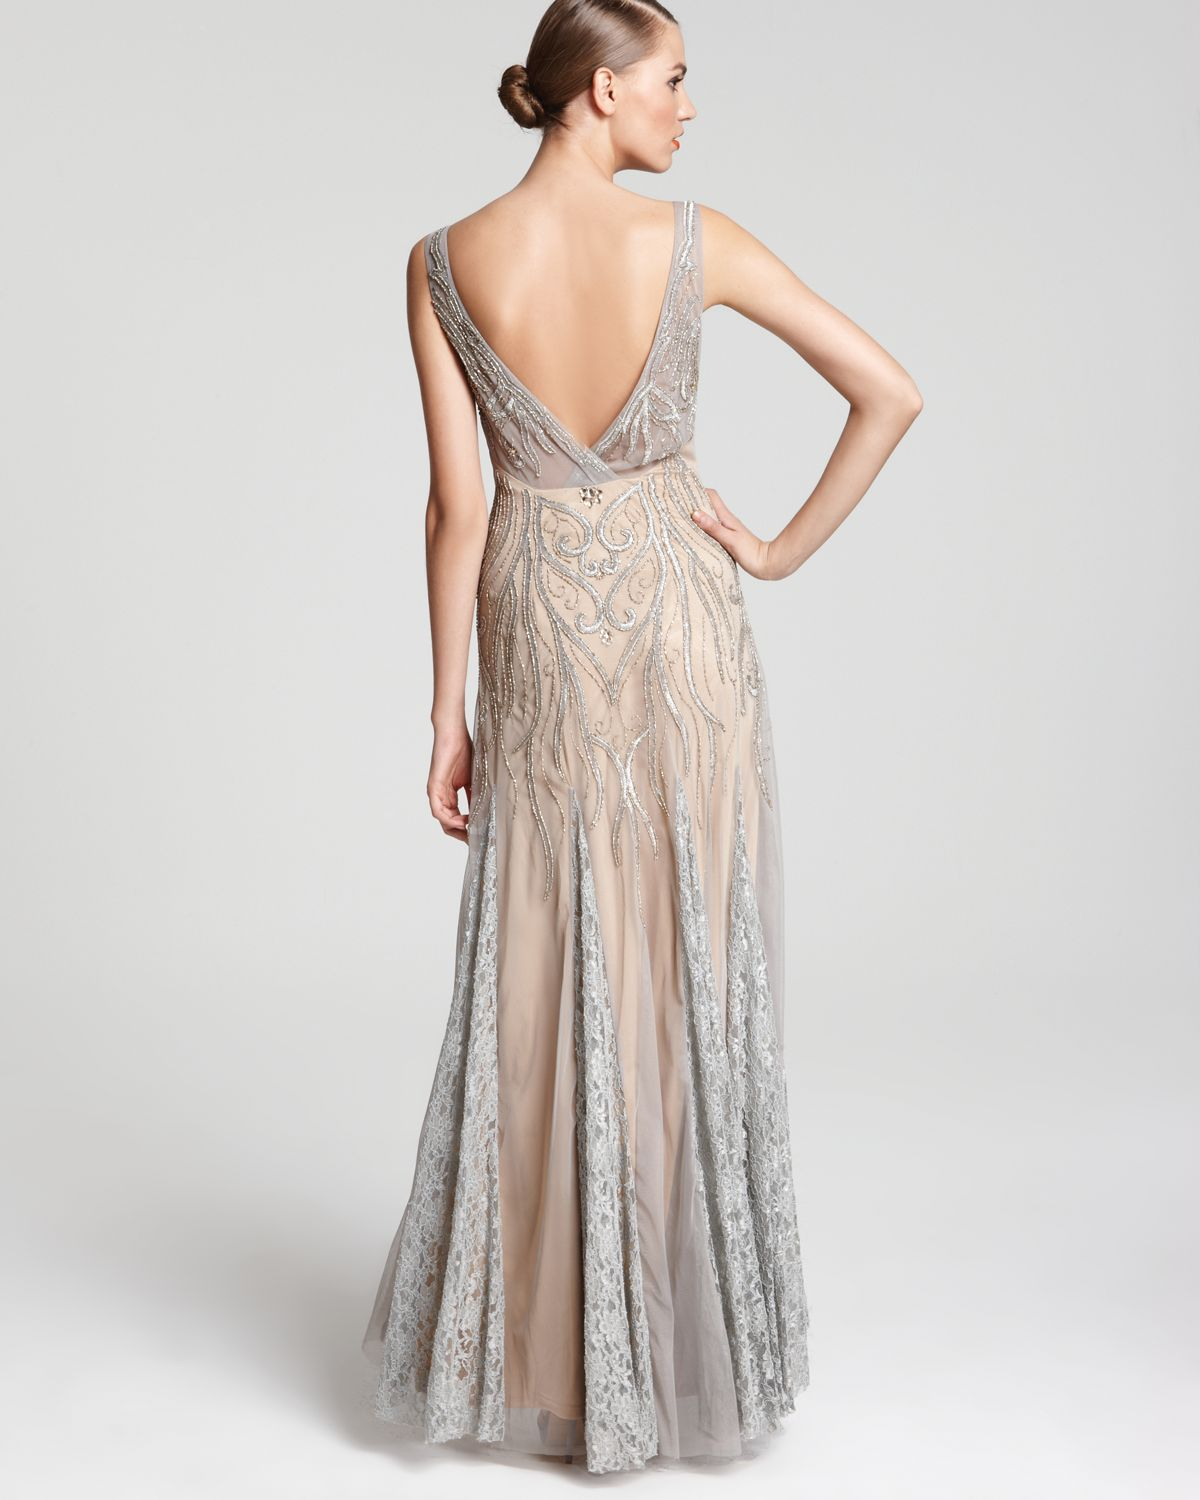 Lyst - Sue Wong Gown V Neck in Gray